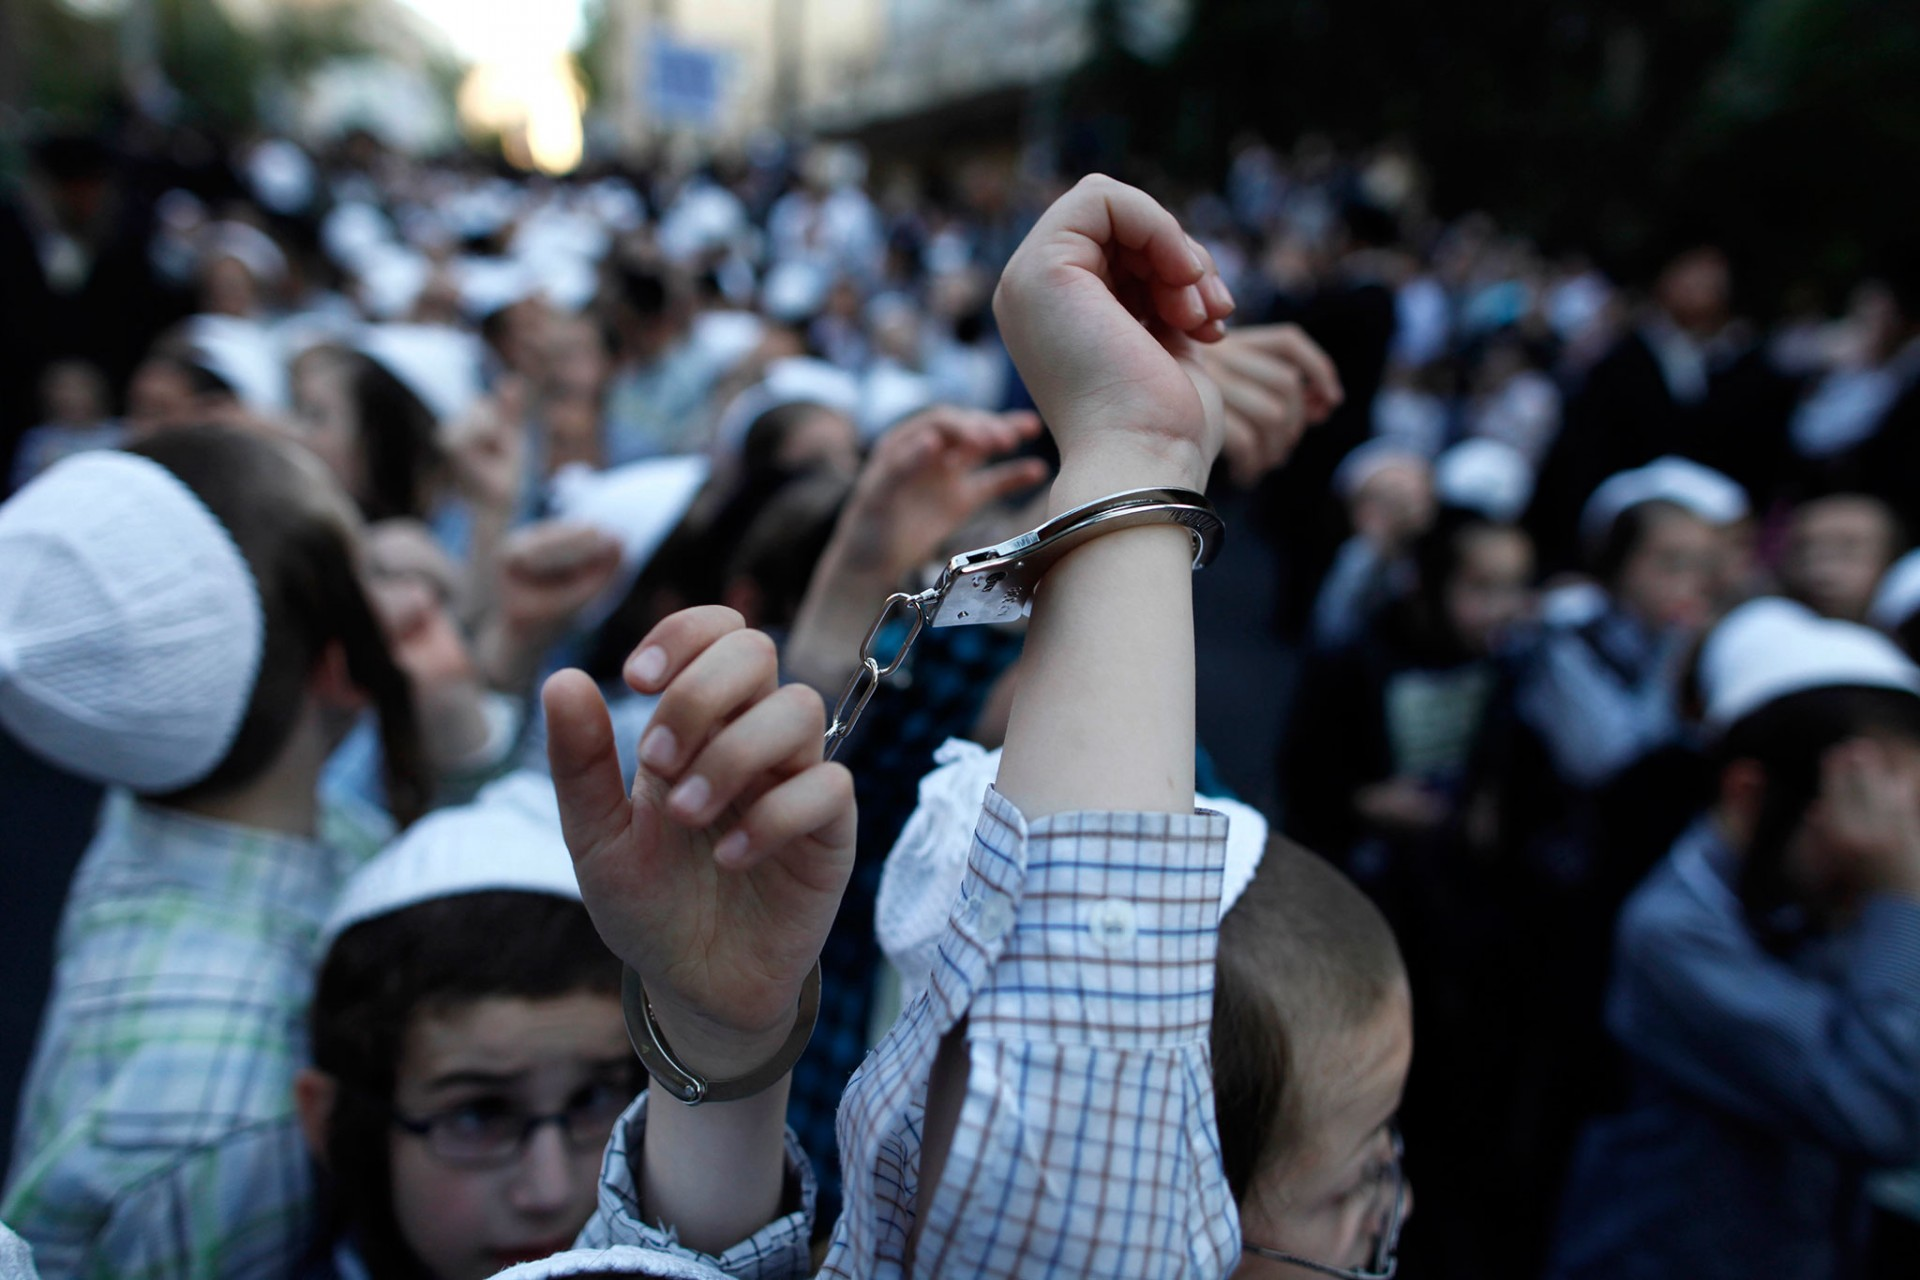 Demonstration Against Military Conscription In Israel, Jerusalem 2012